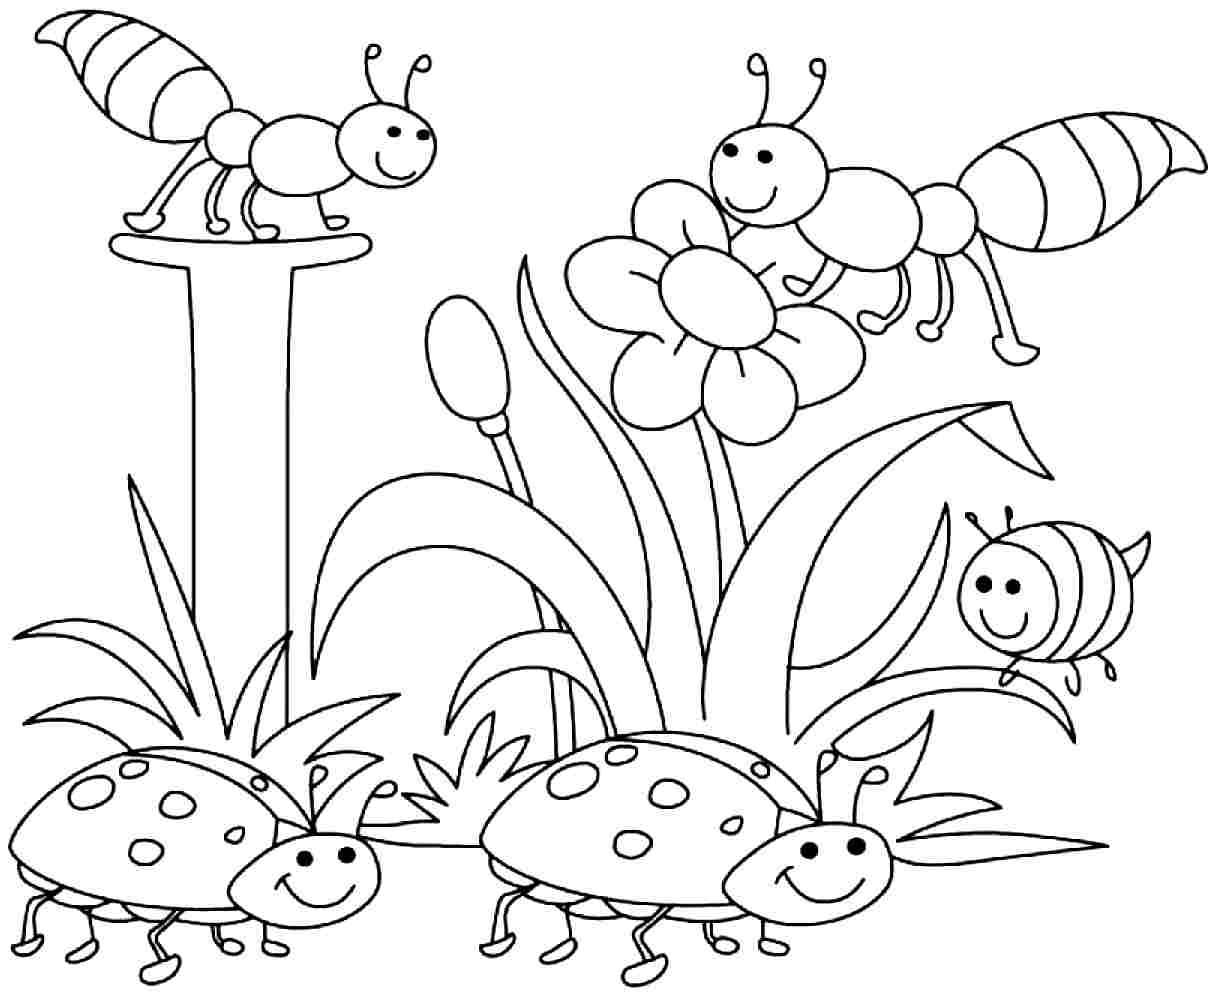 Free Coloring Pages For Preschoolers Spring : Best images of spring season coloring pages printable